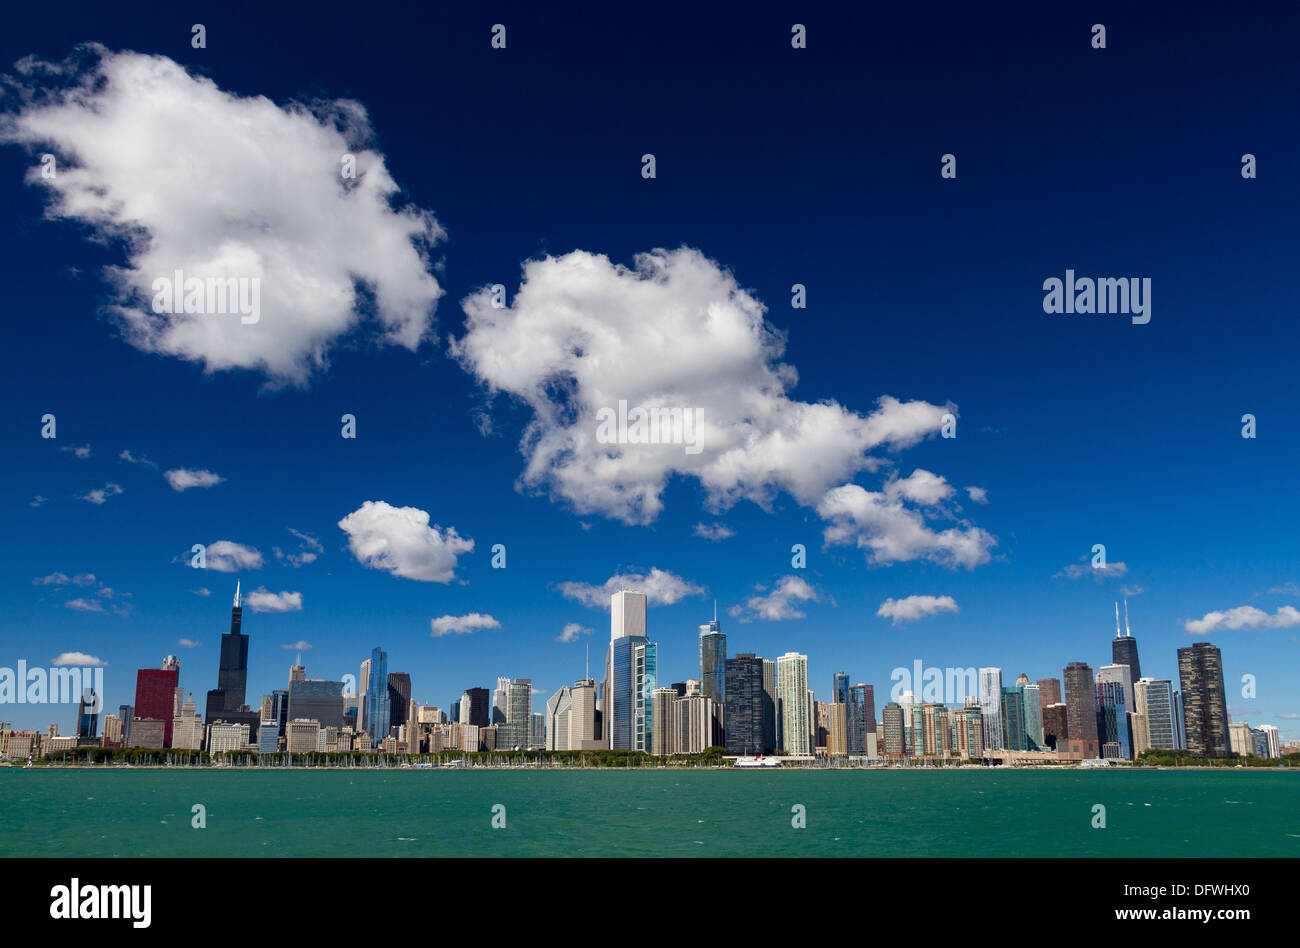 Chicago skyline with deep blue sky and fluffy clouds Stock Photo